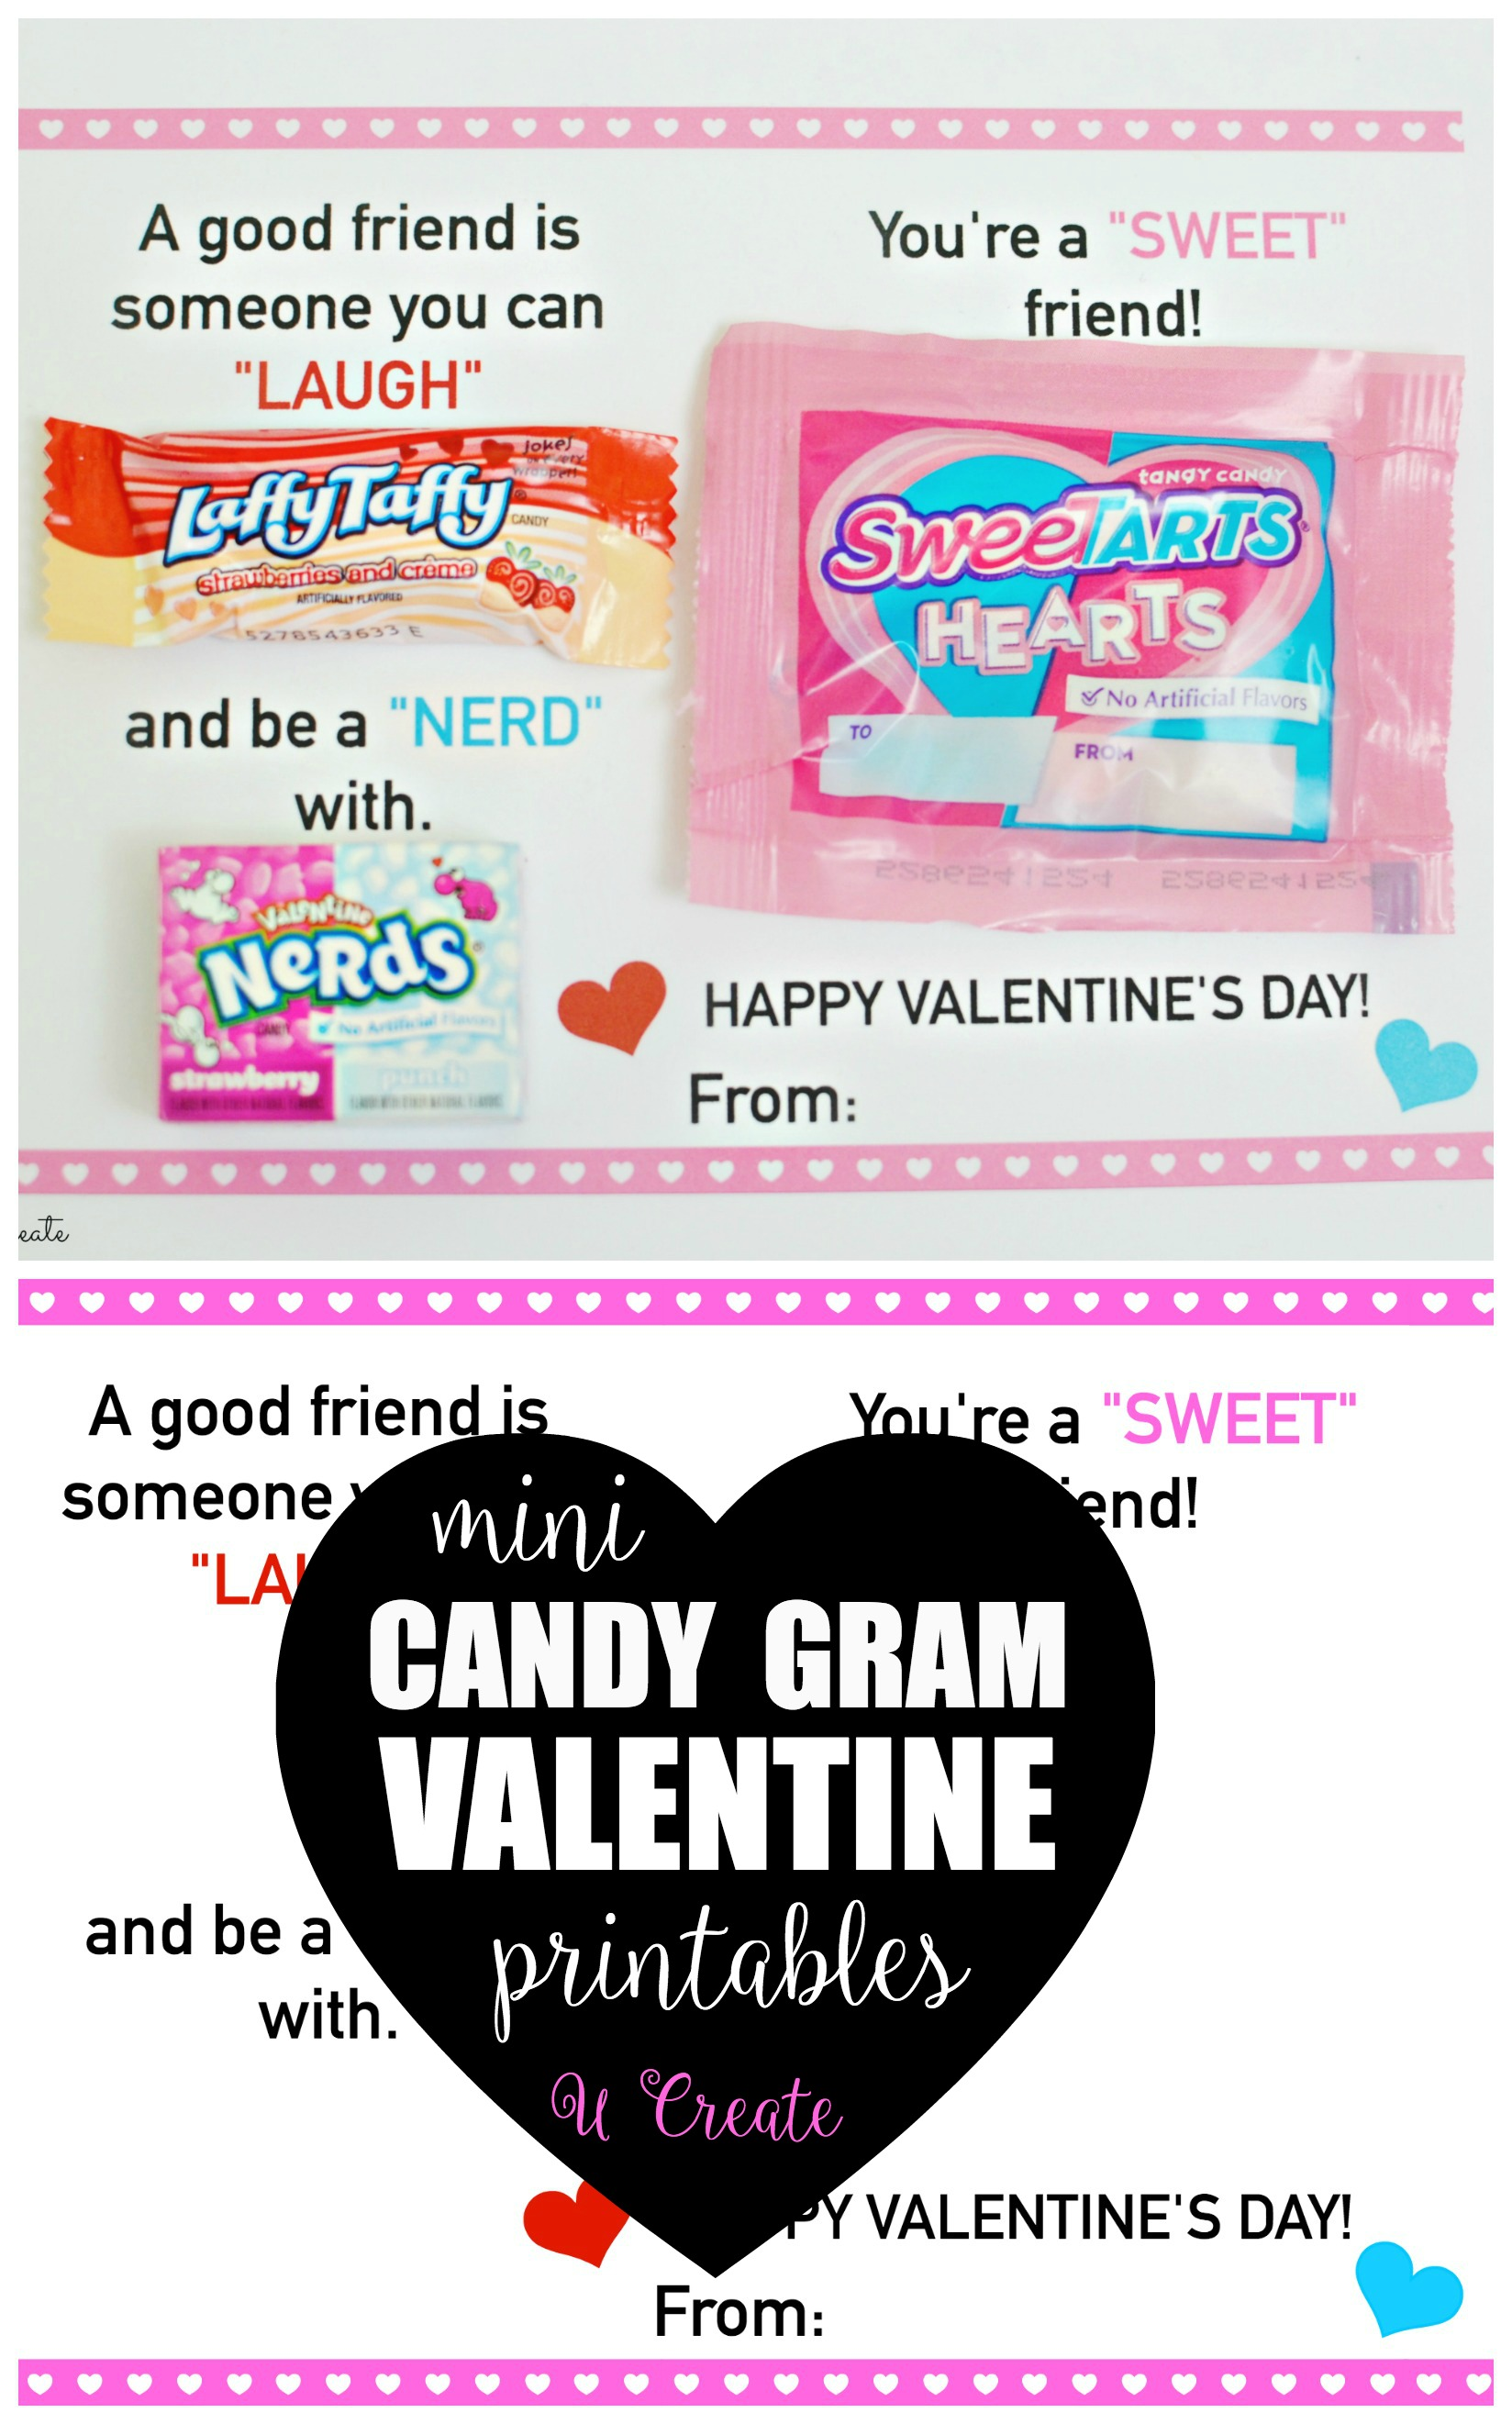 Mini Candy Gram Valentine Printables U Create